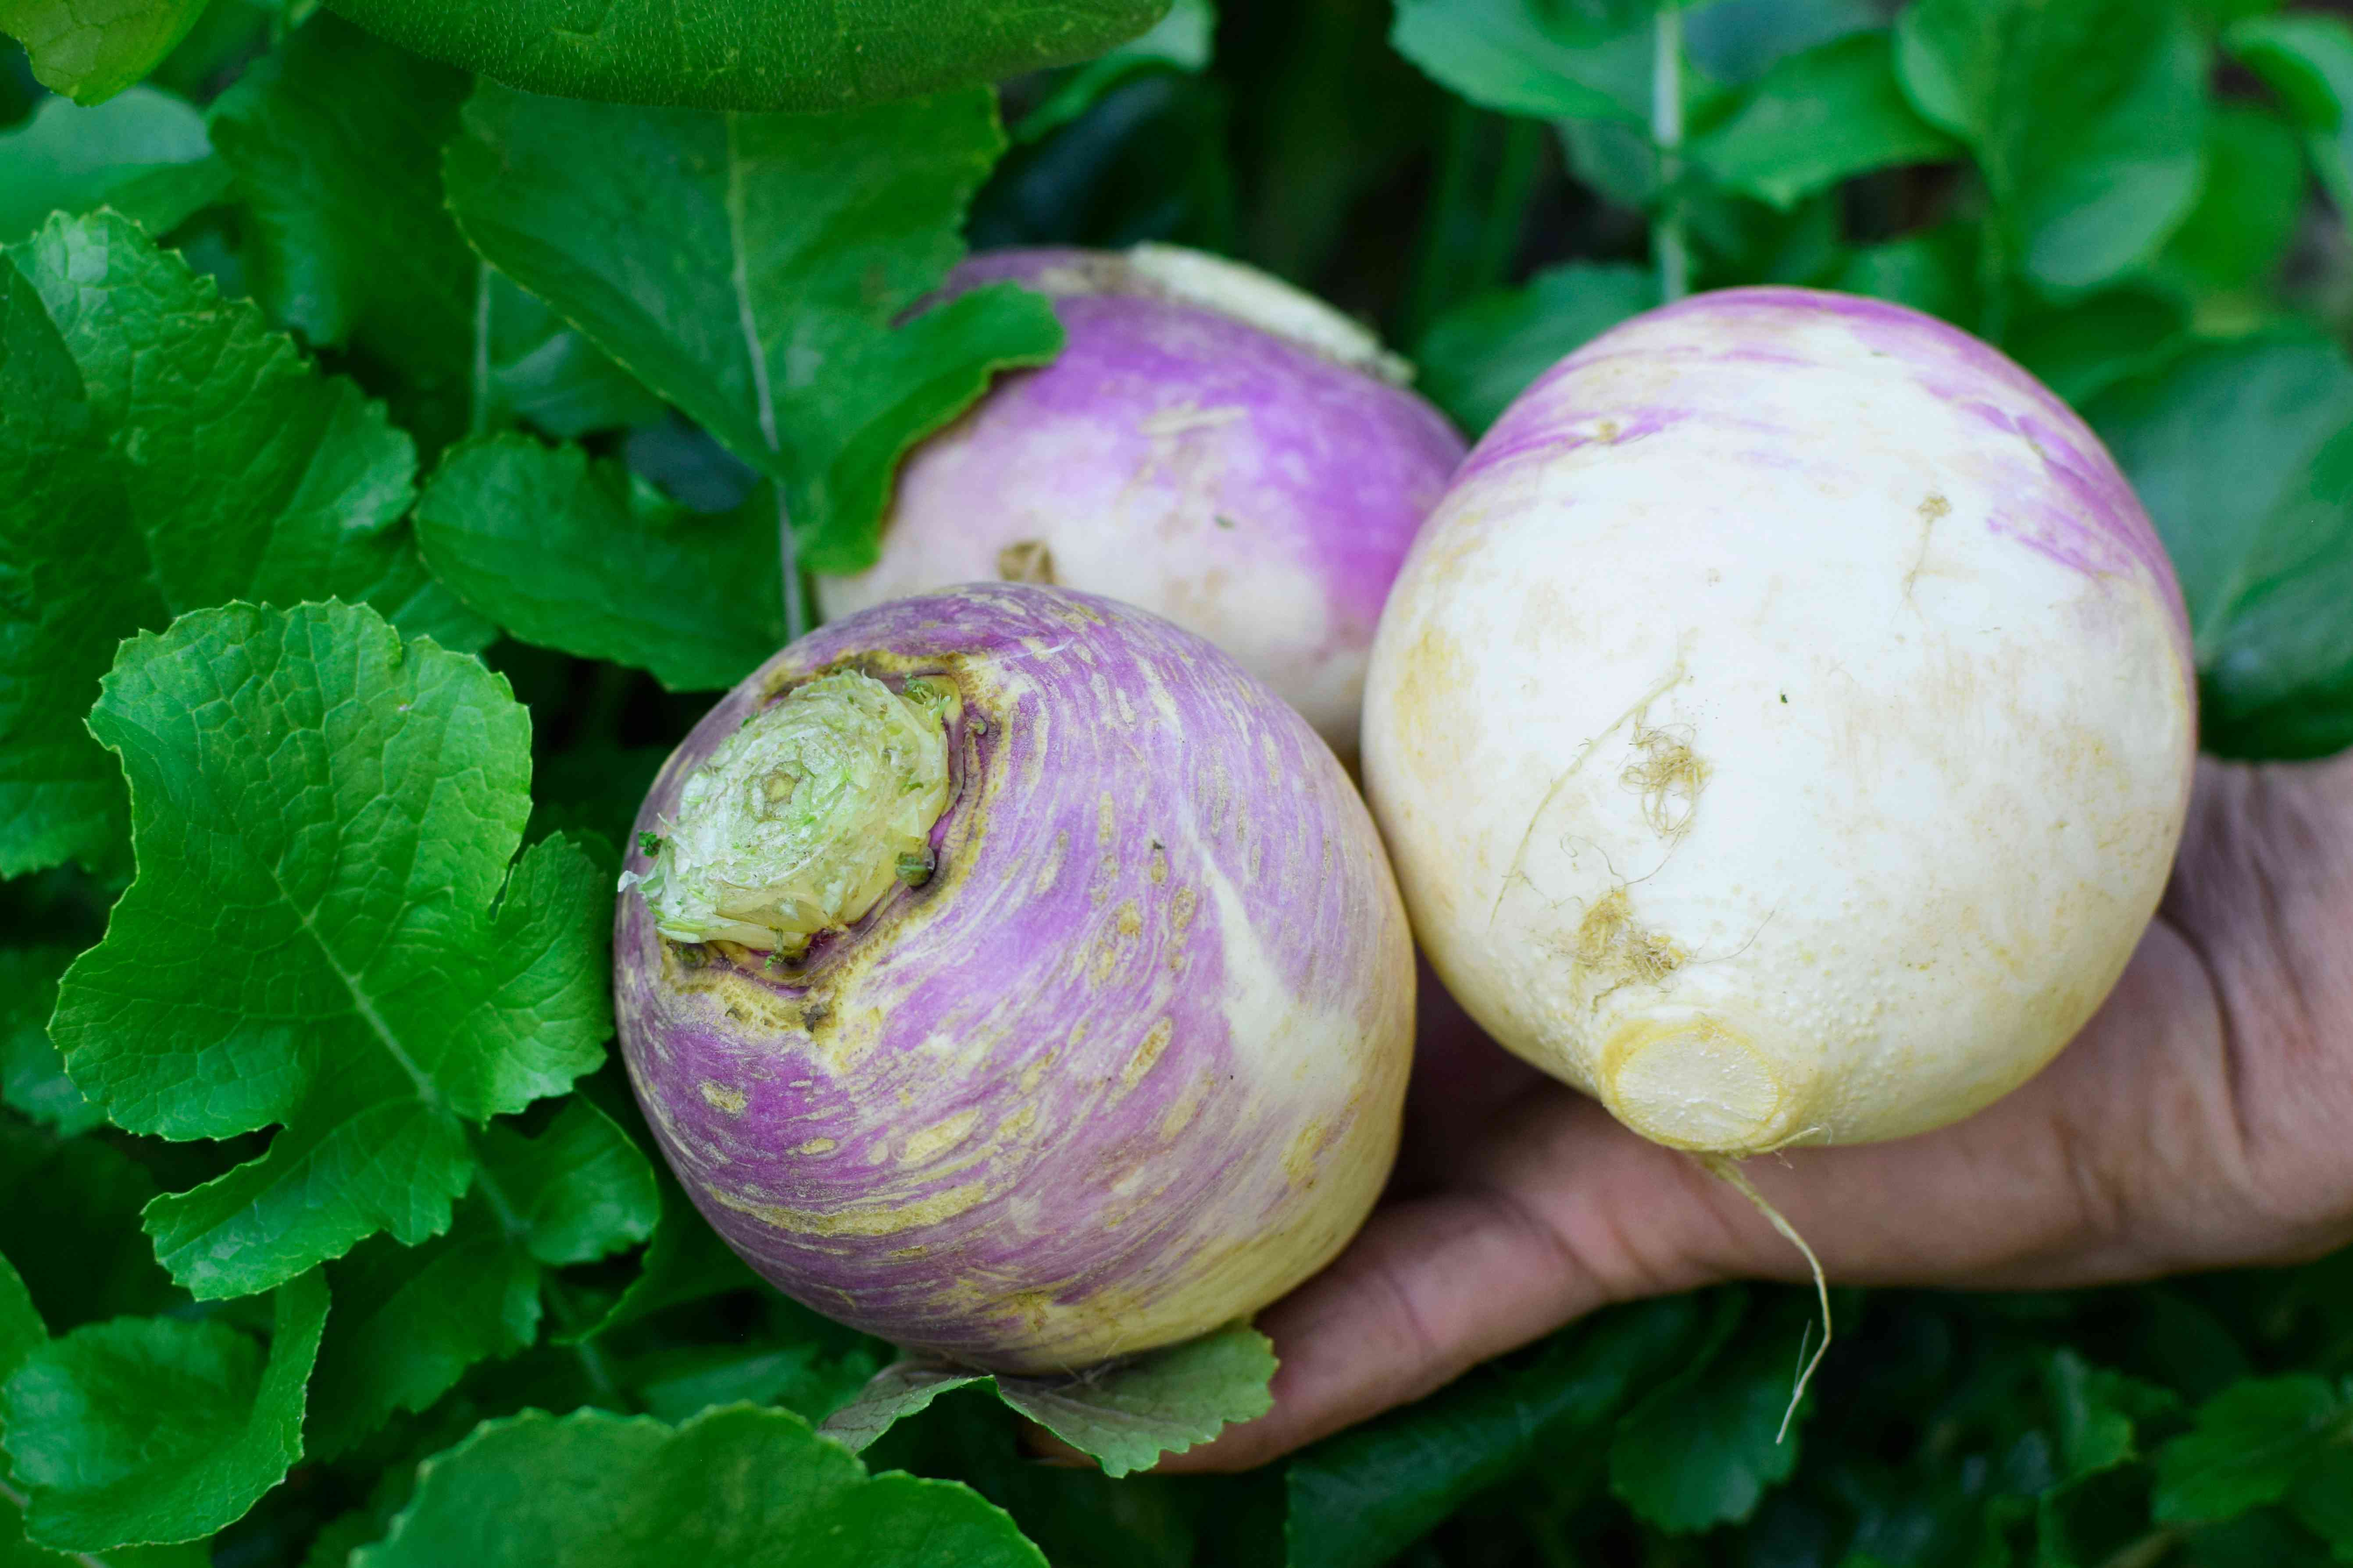 Grown turnips with white and purple markings and leaves held by hand